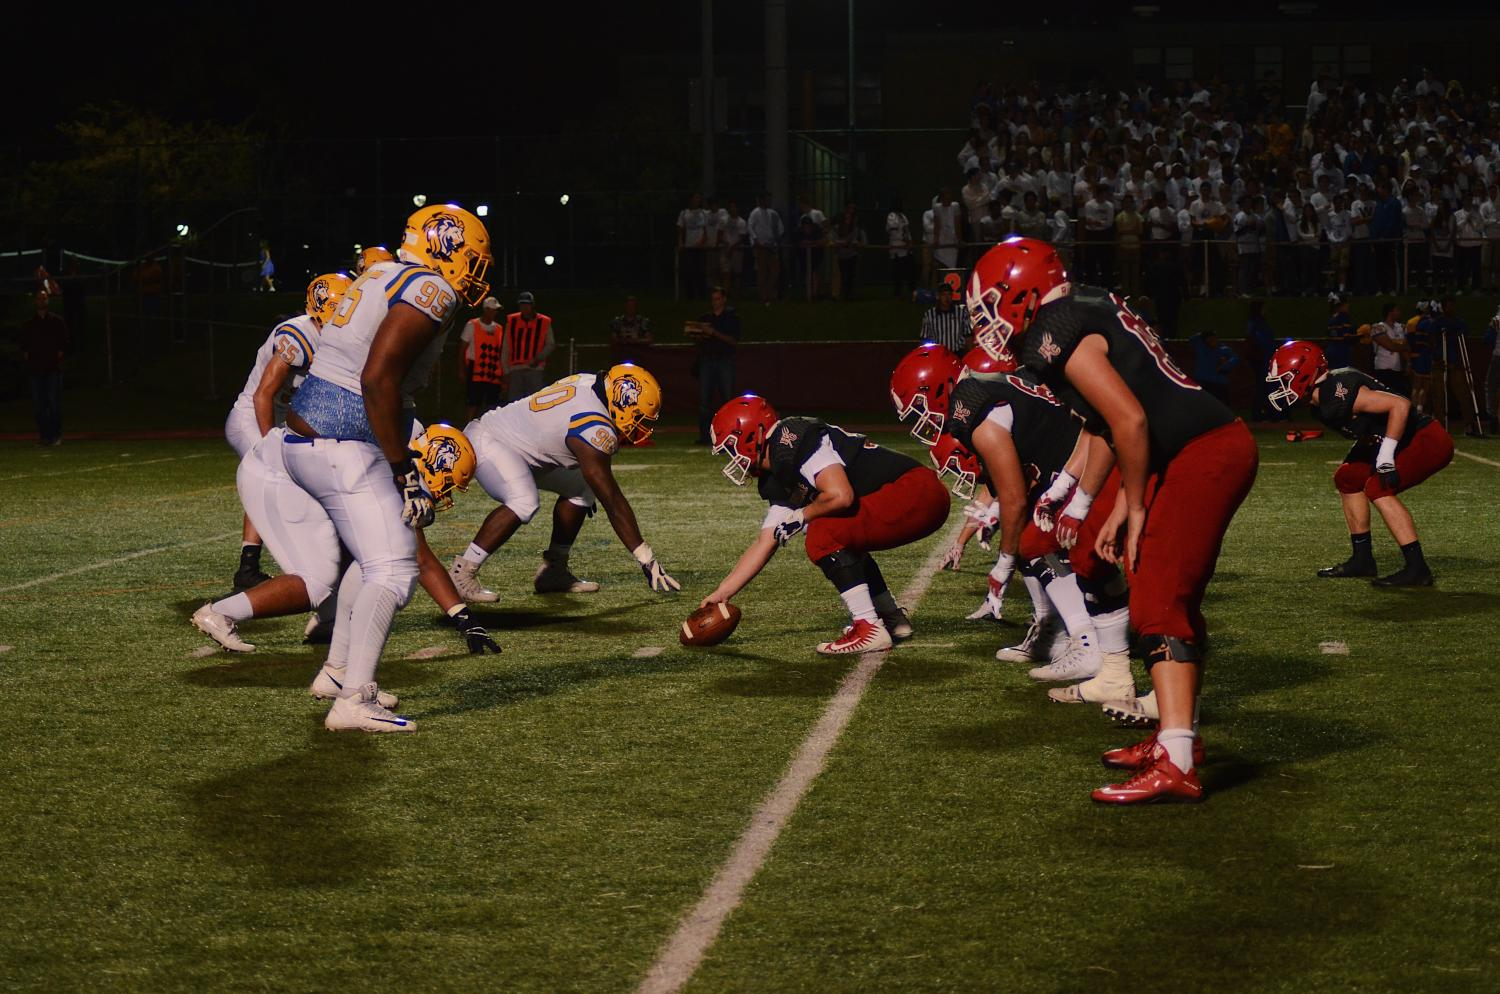 Central's latest hype video, the students' fierce school spirit, and the historic rivalry with Lyons Township all ensured that the game on Friday, Oct. 13 would be the most intense of the year.